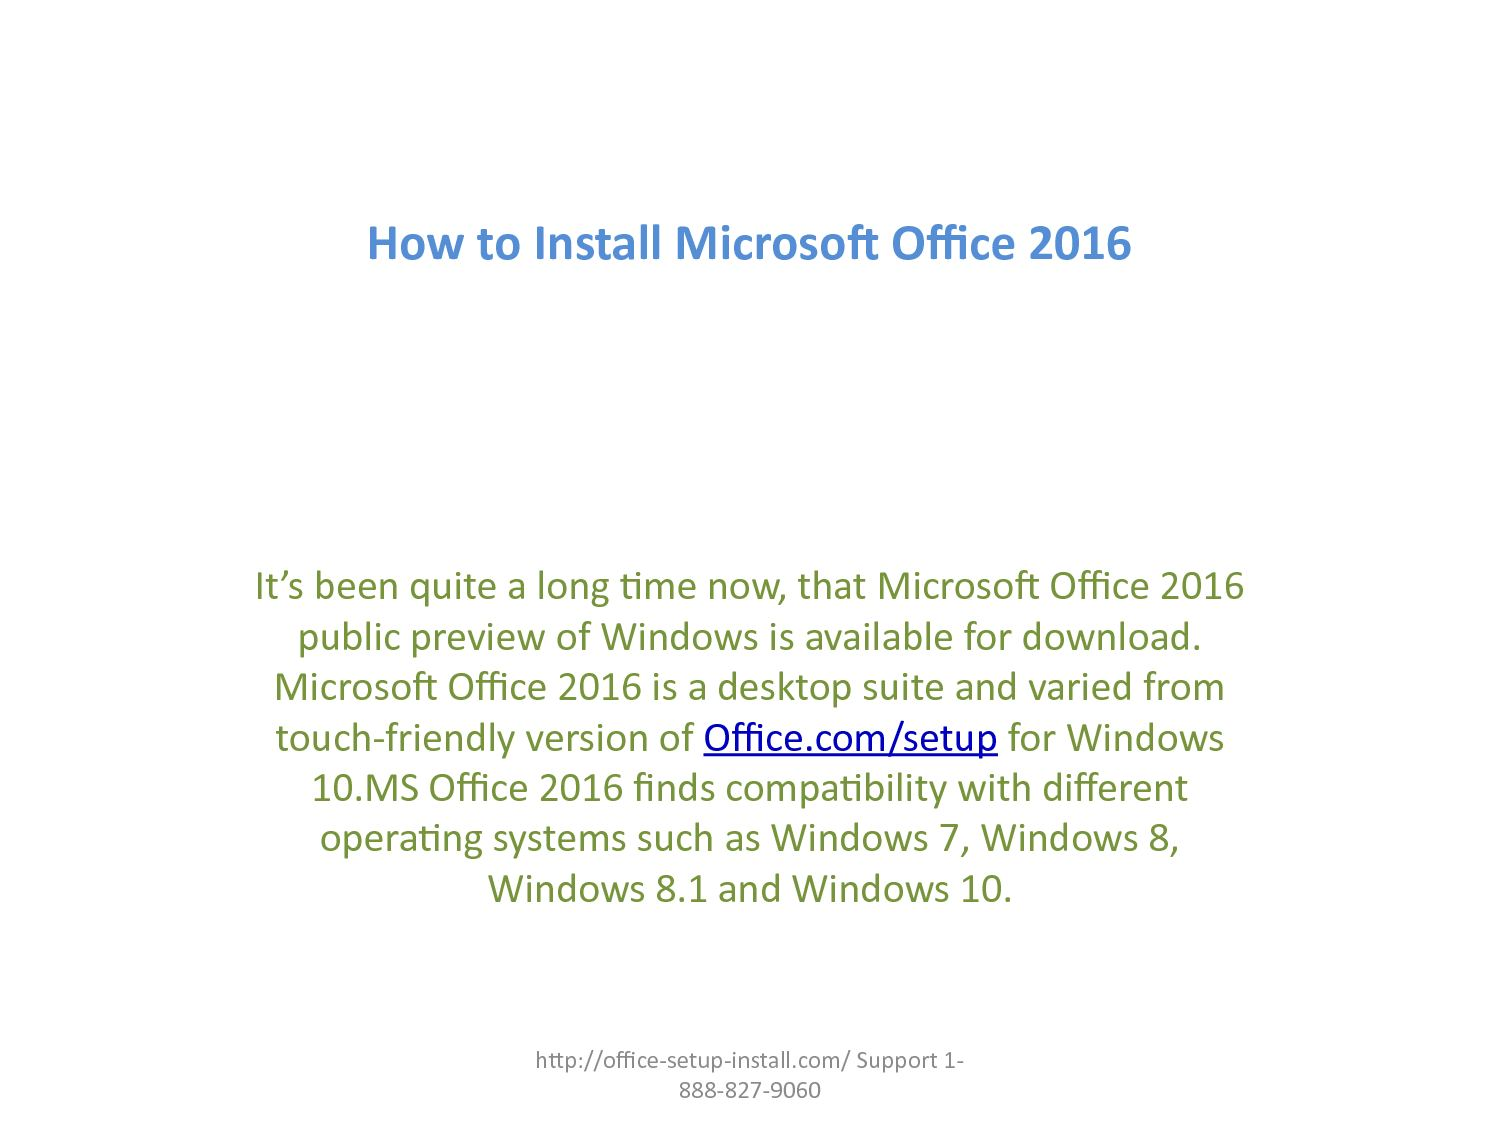 microsoft office 2016 download windows 7